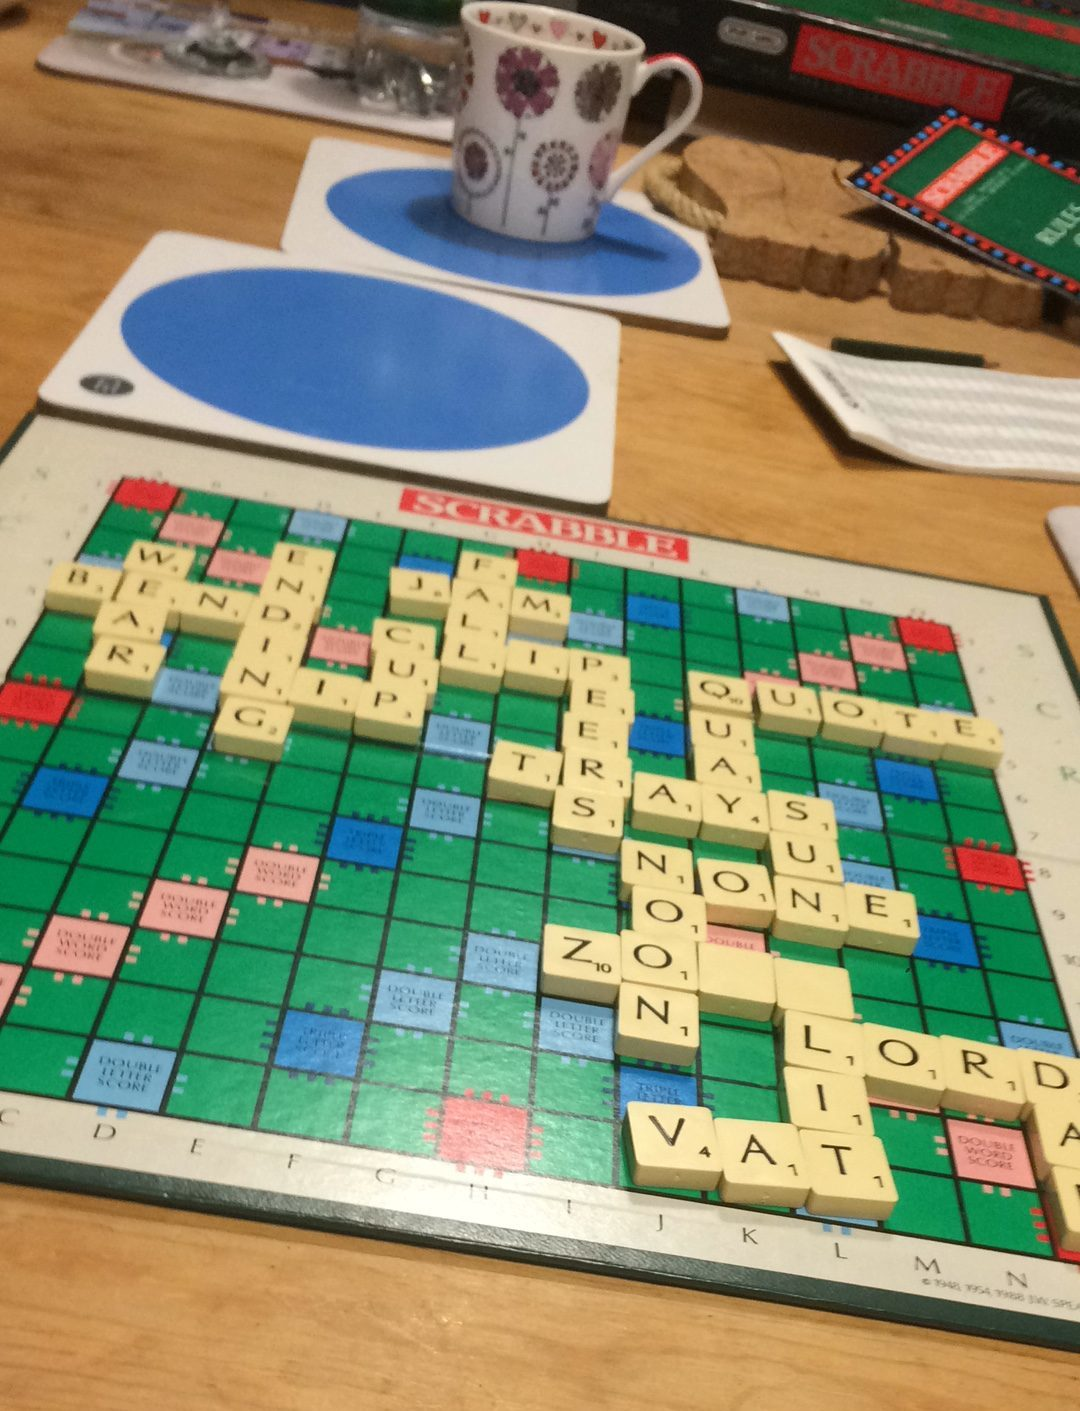 Scrabble in England